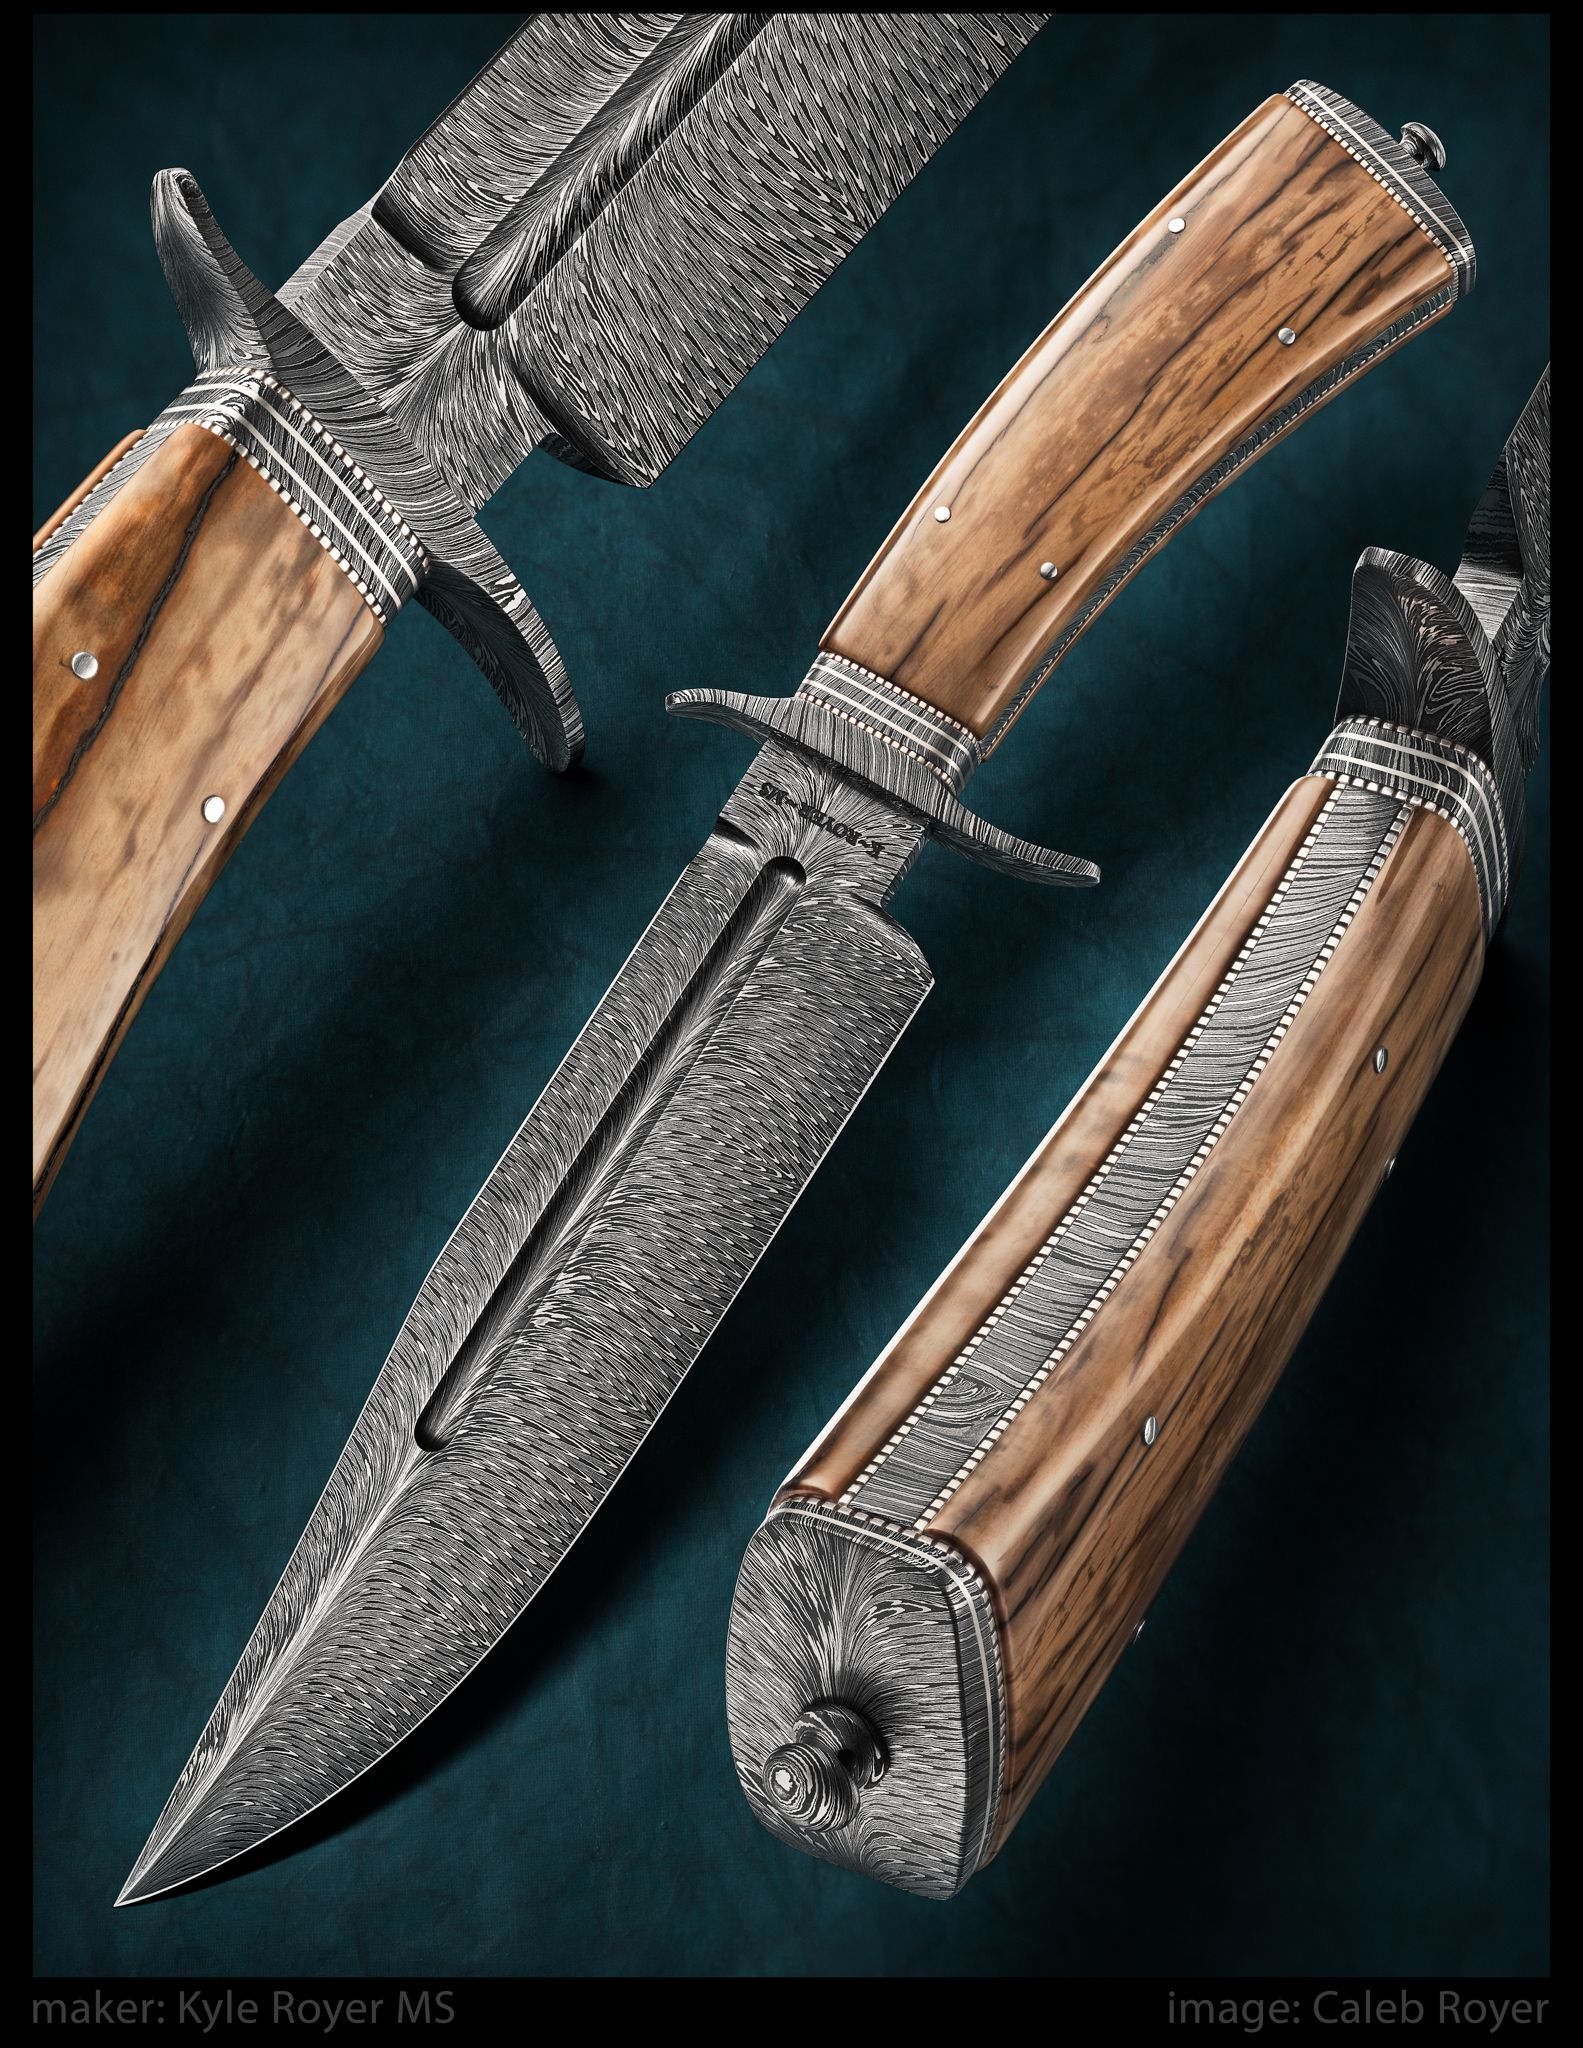 maker: Kyle Royer MS Vest Fighter Feather Pattern Damascus Mammoth